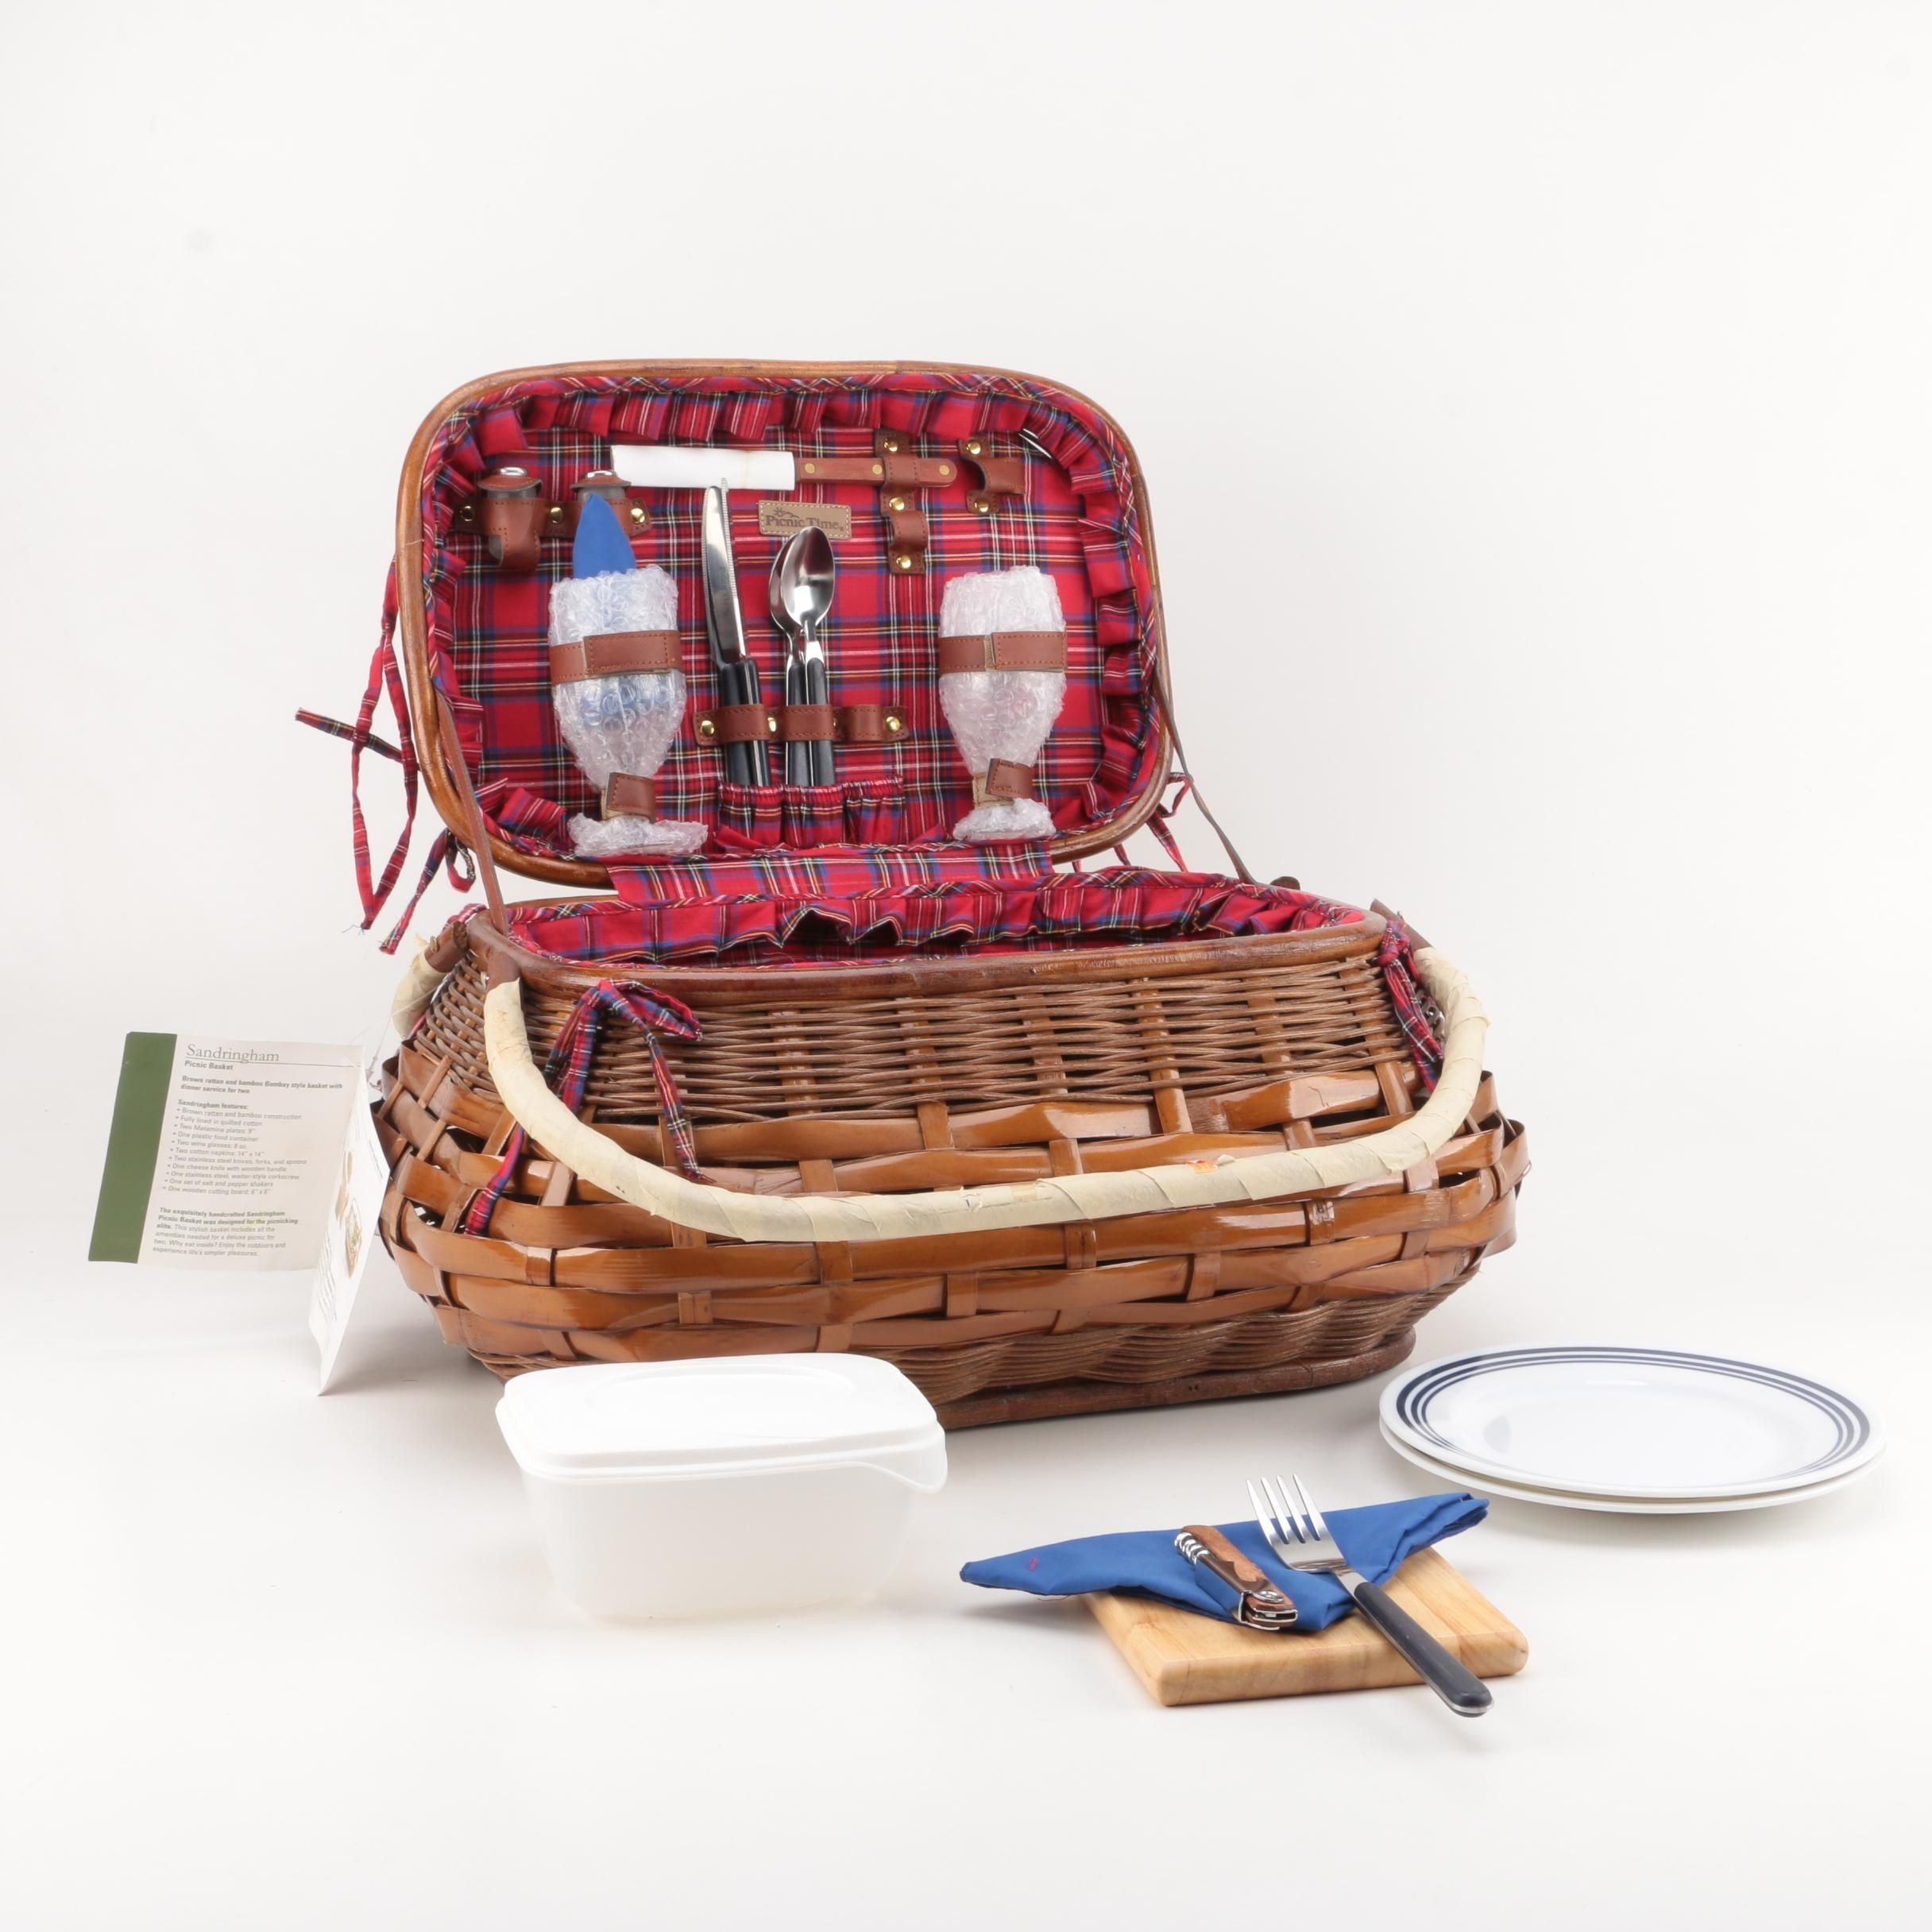 Picnic Basket with Picnic Supplies